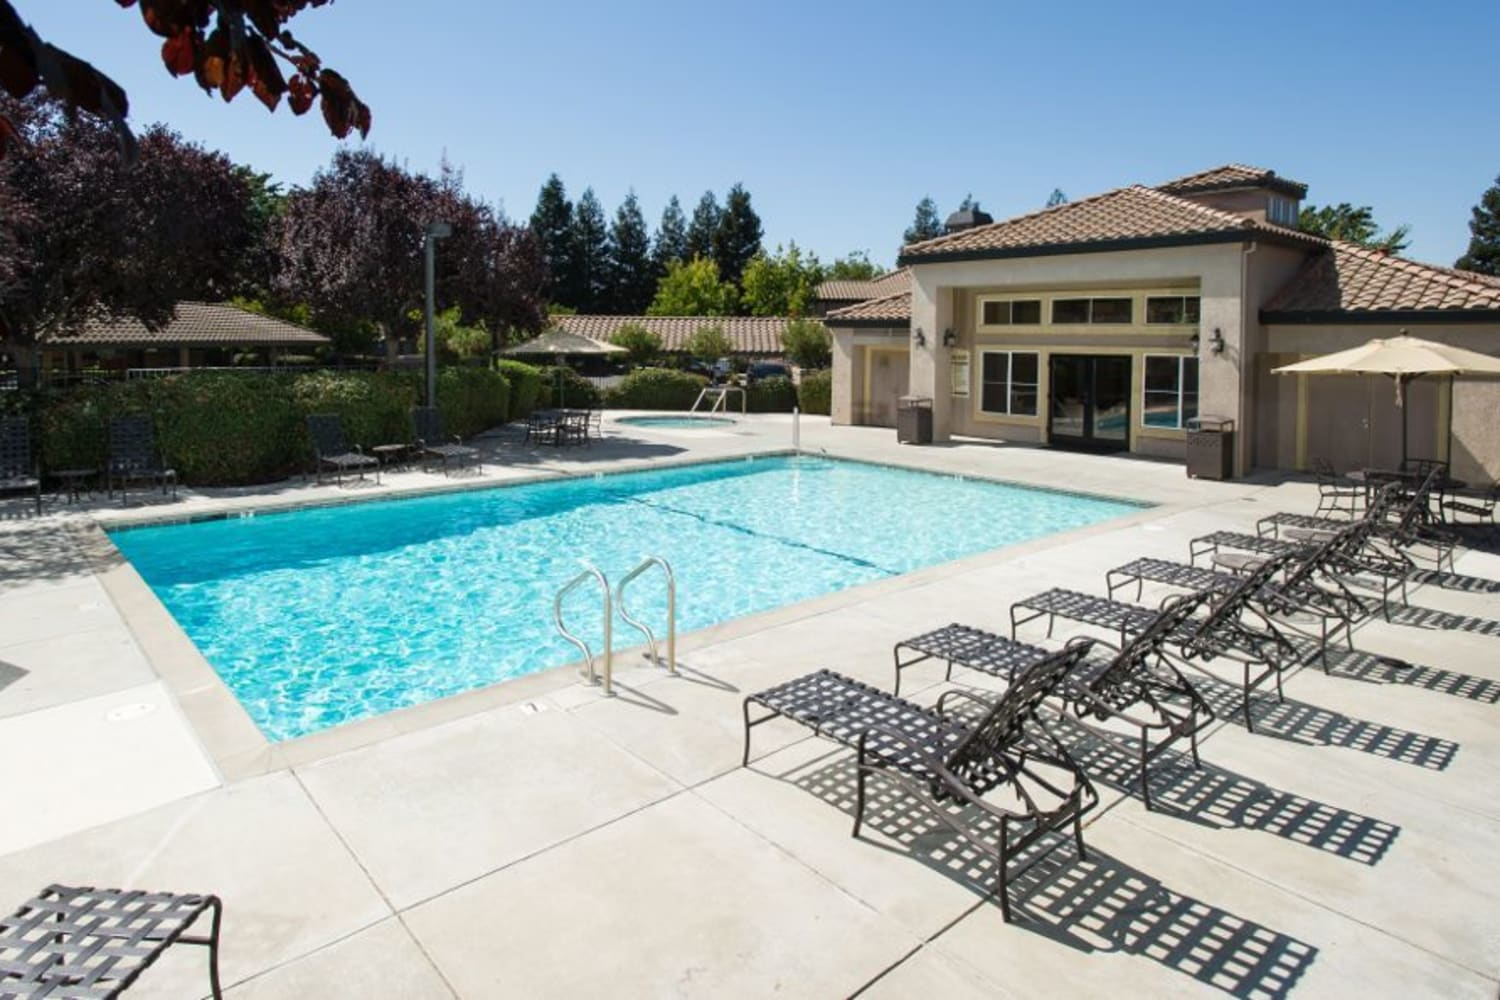 Enjoy apartments with a swimming pool at La Vina Apartments in Livermore, California